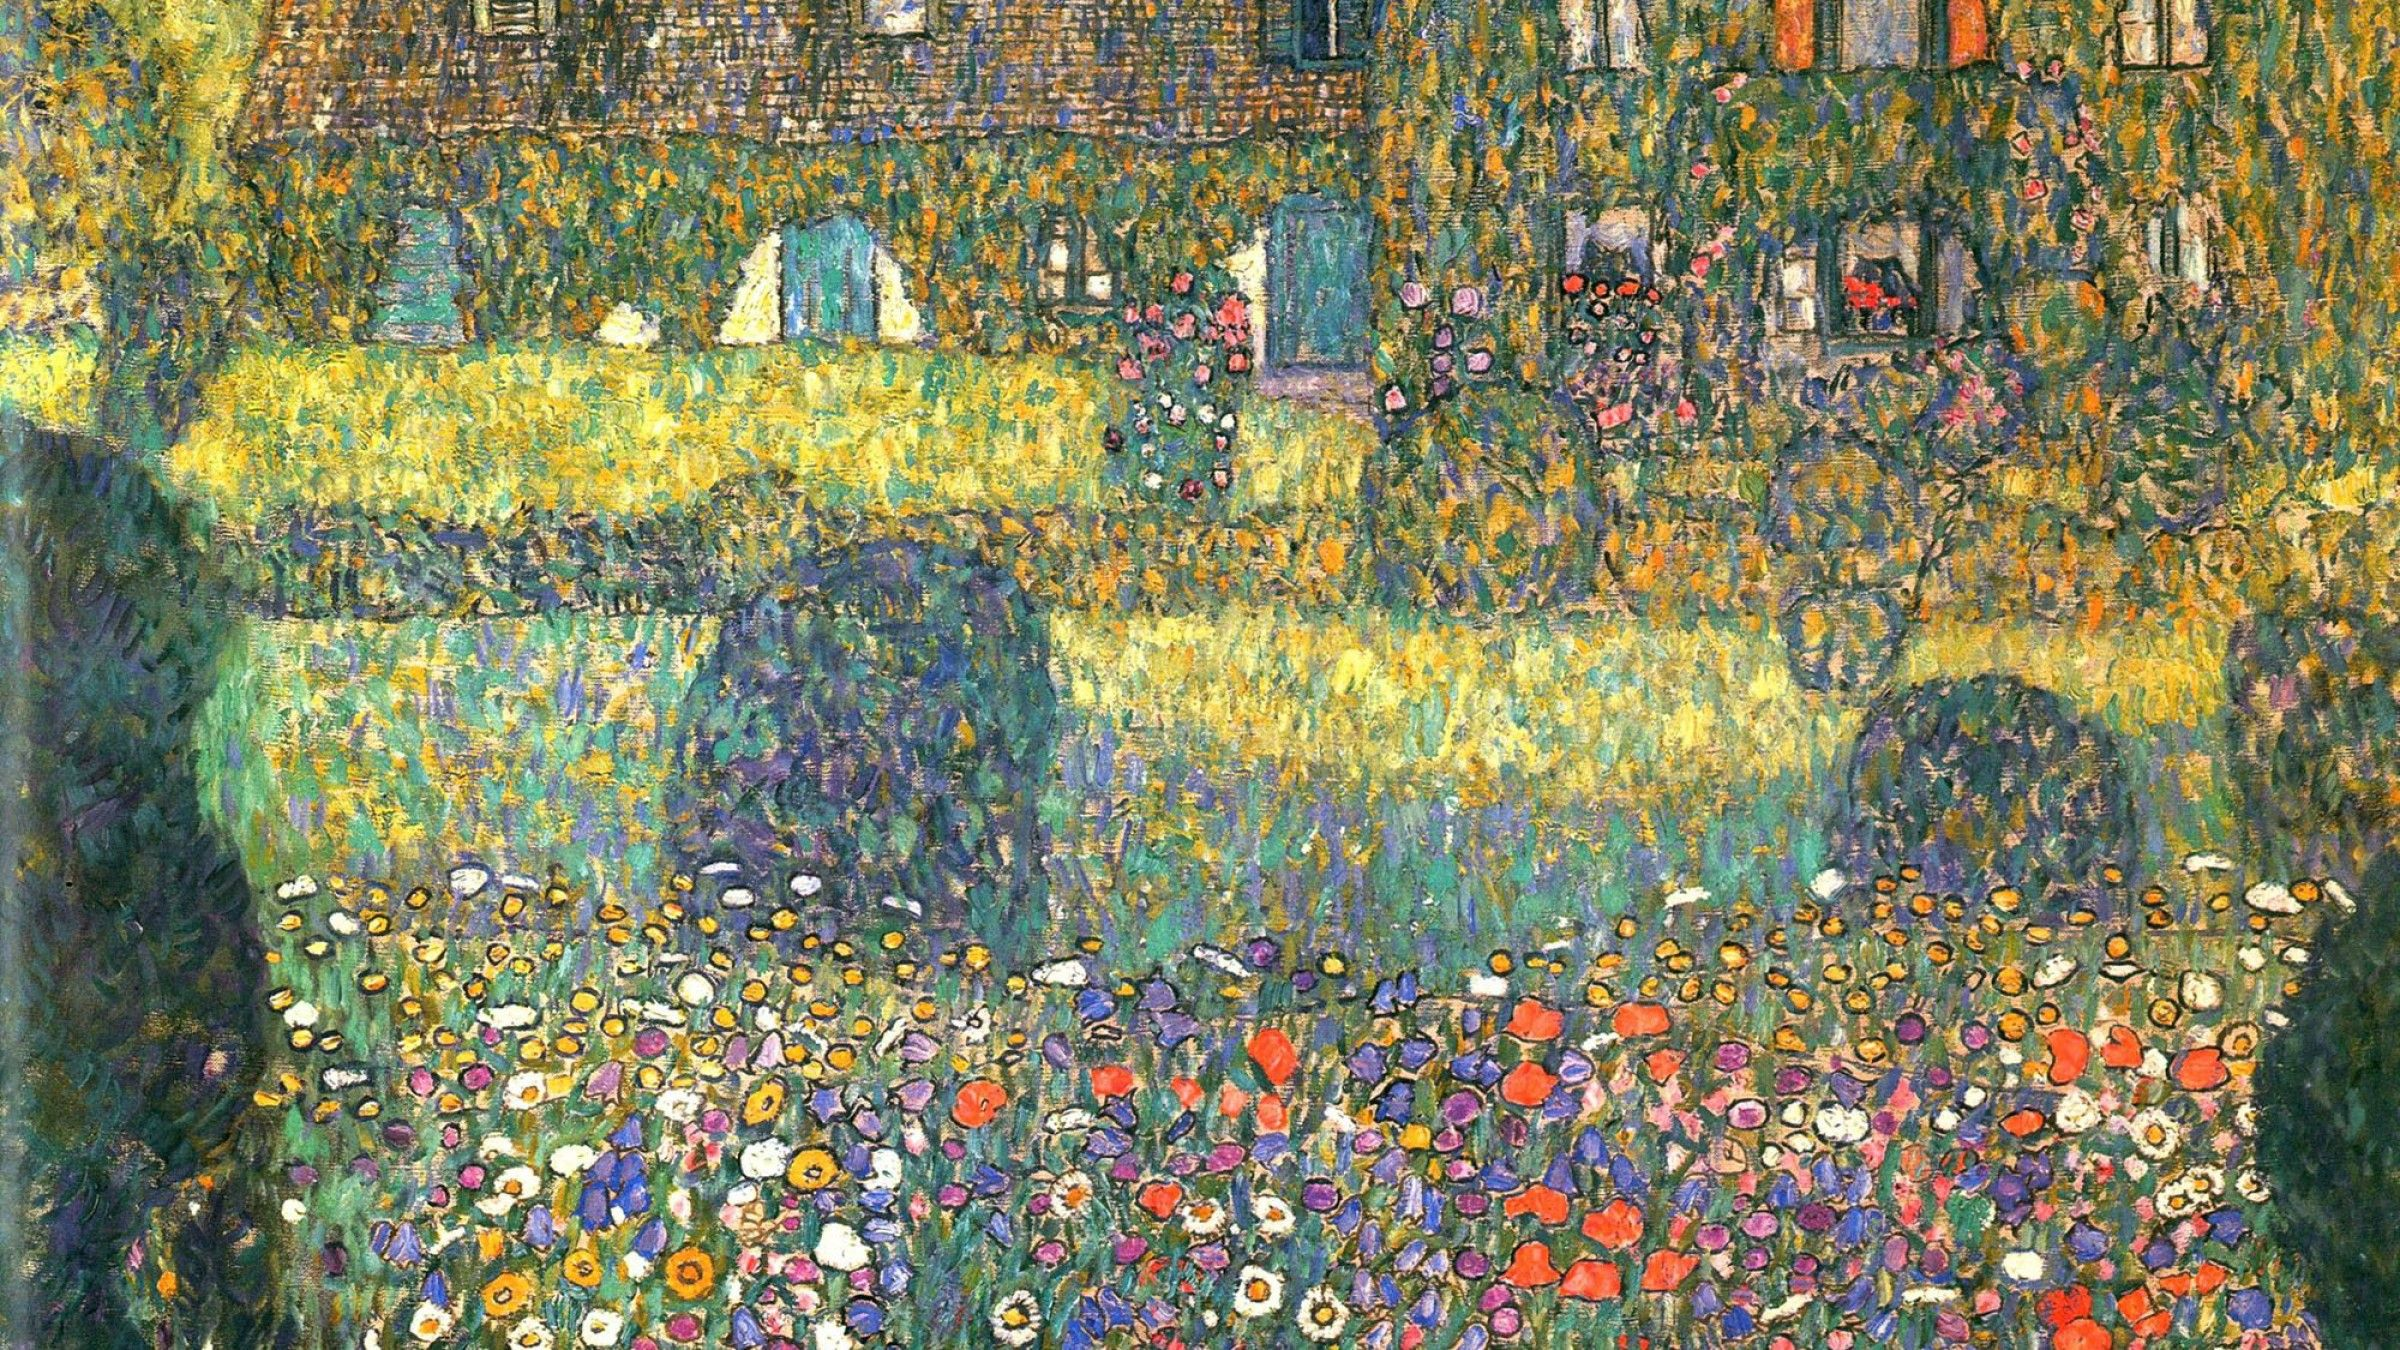 2400x1350 Painting of Gustav Klimt - Backyard wallpapers and images ...